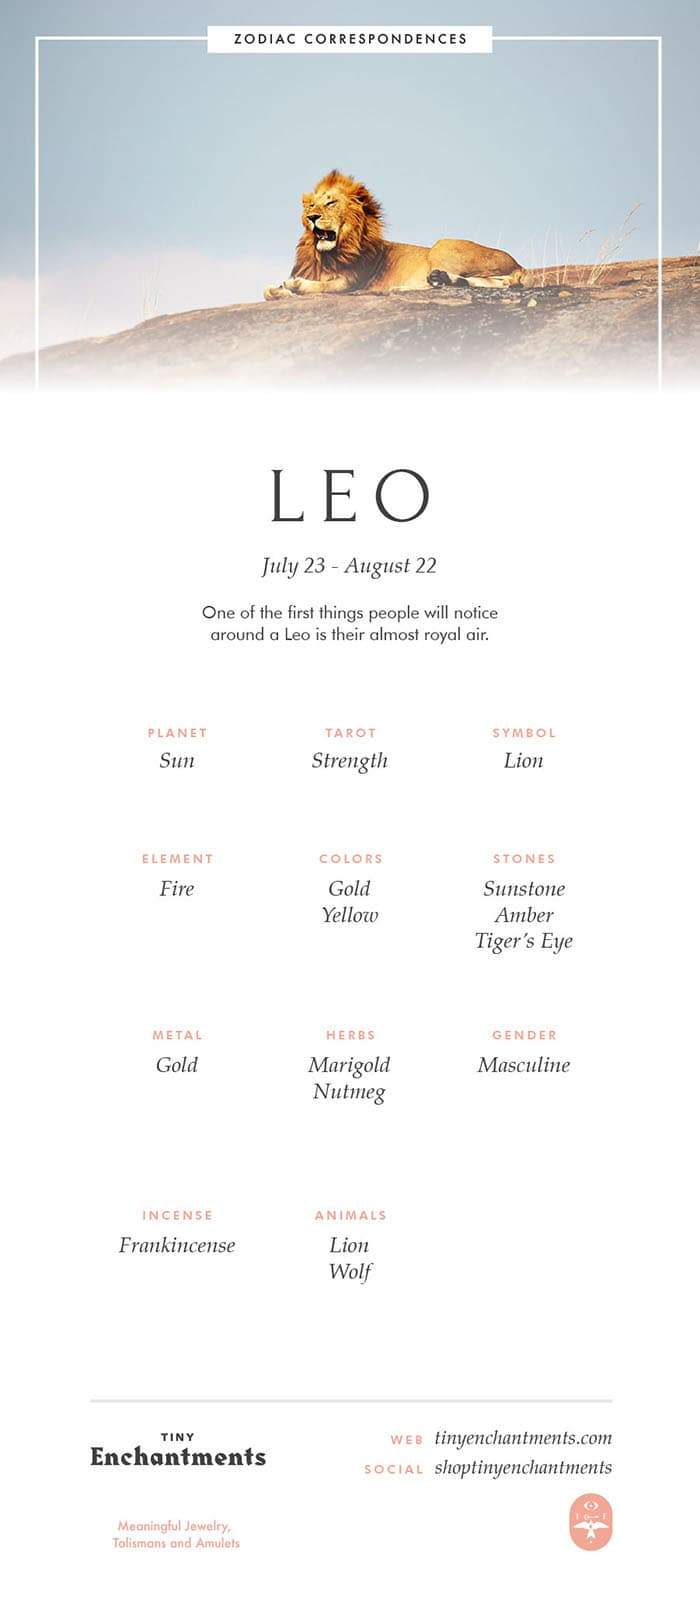 Leo Zodiac Sign Correspondences - Leo Personality, Leo Symbol, Leo Mythology and Leo Meaning Full Infographic